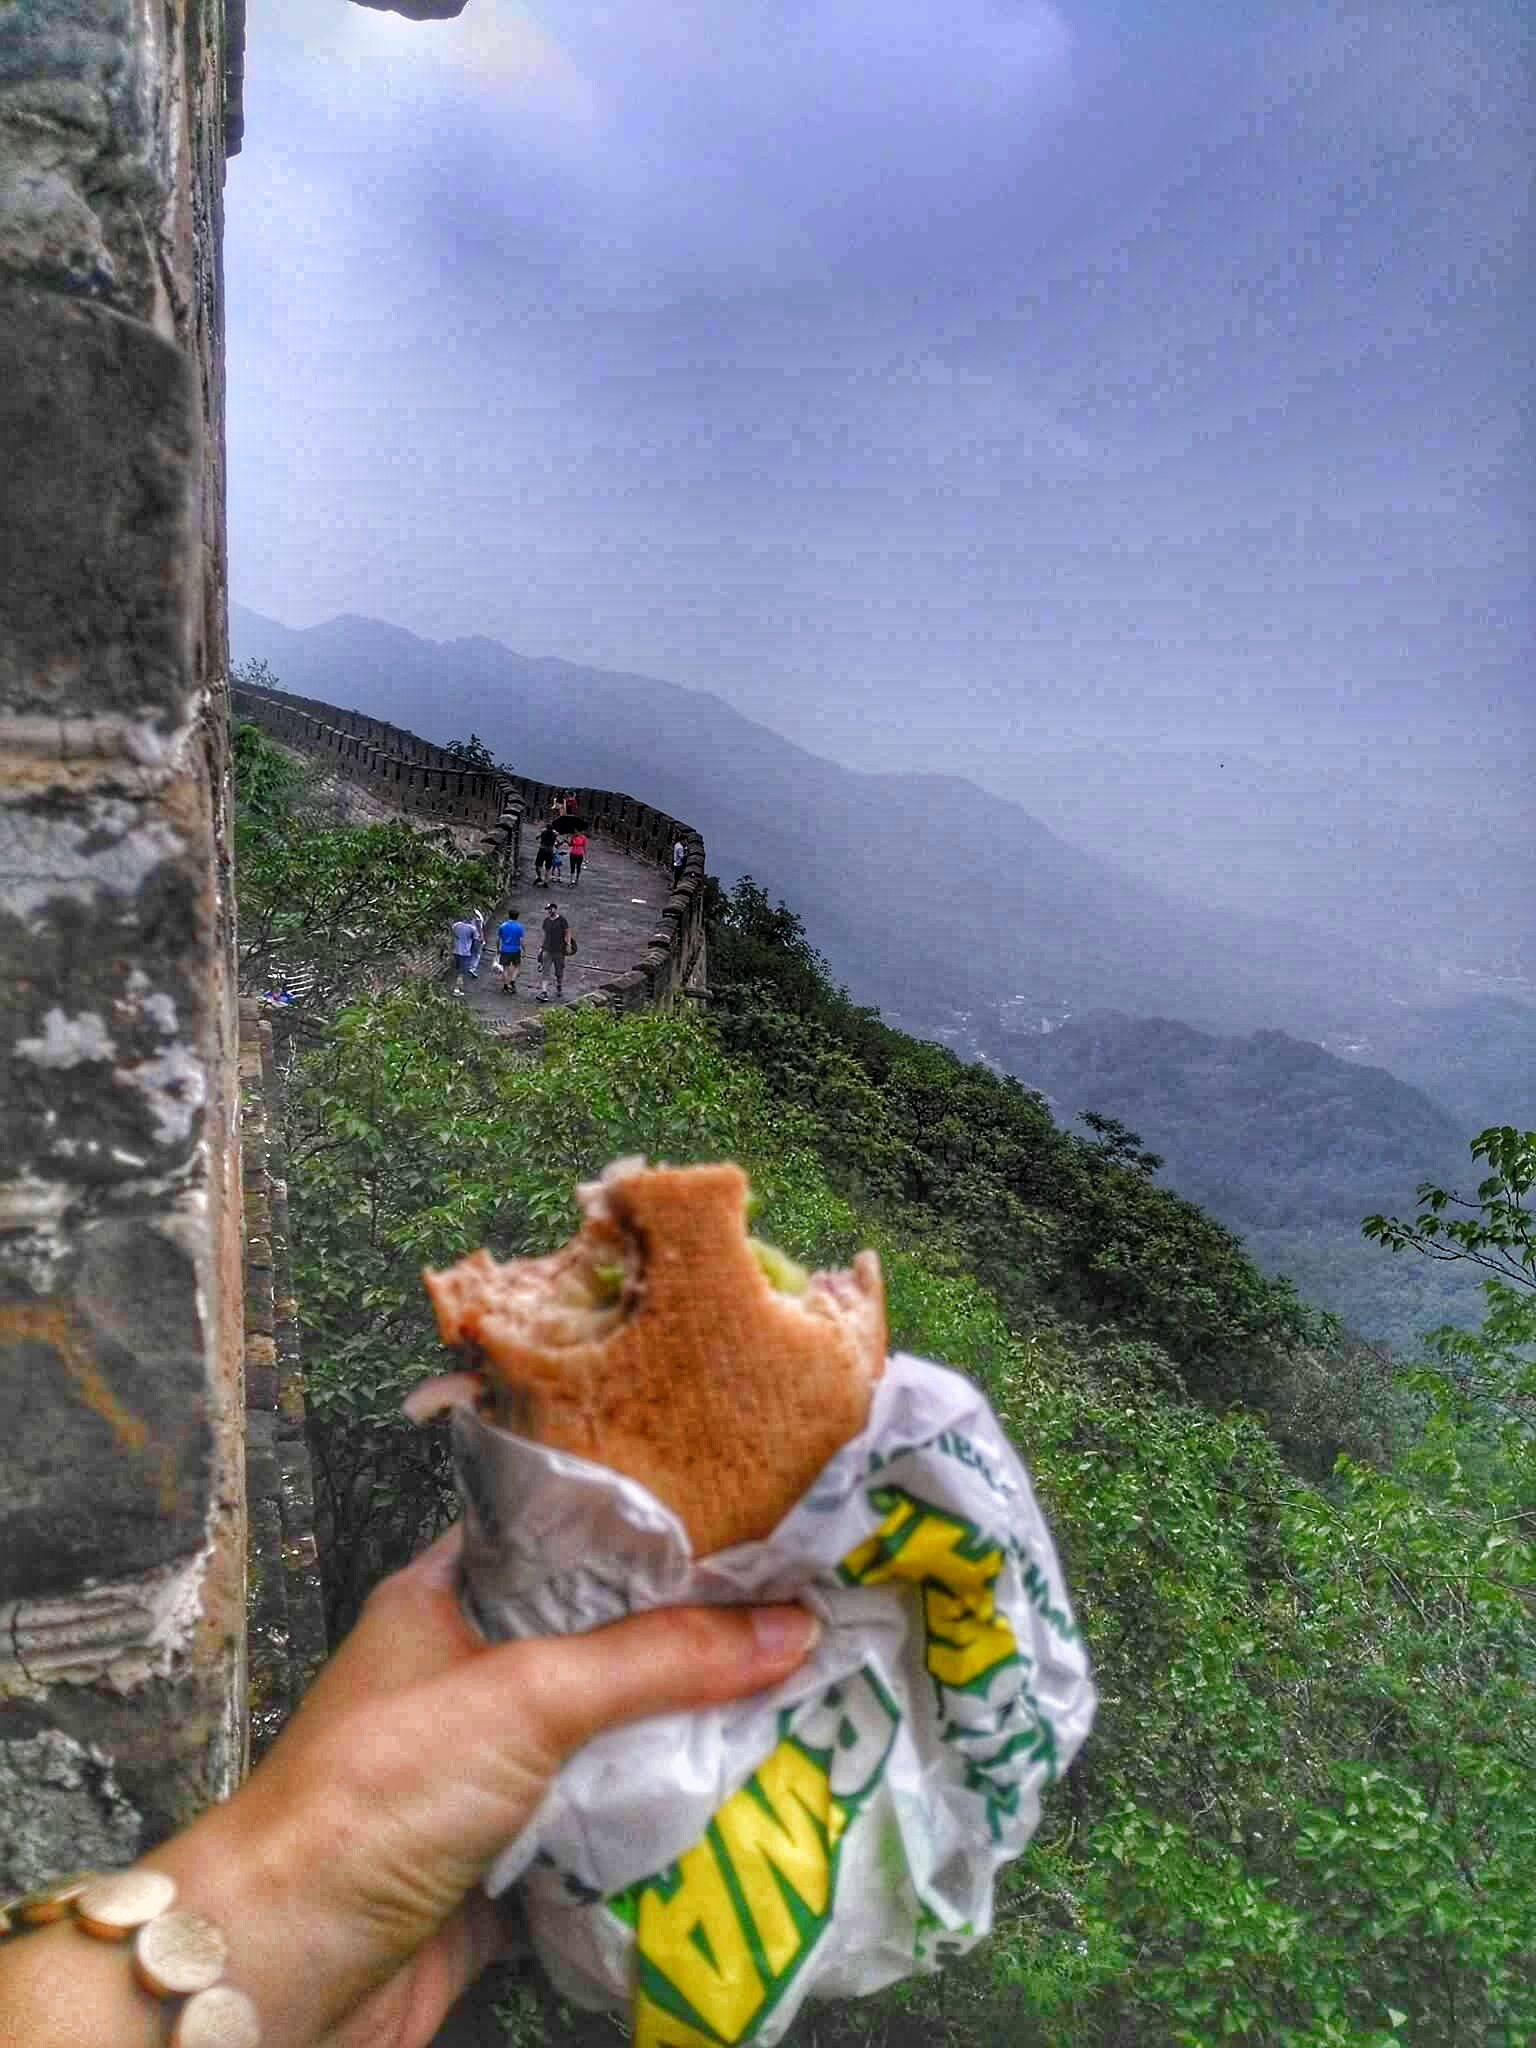 Eating Subway Sandwich at Mutianyu Great Wall, China